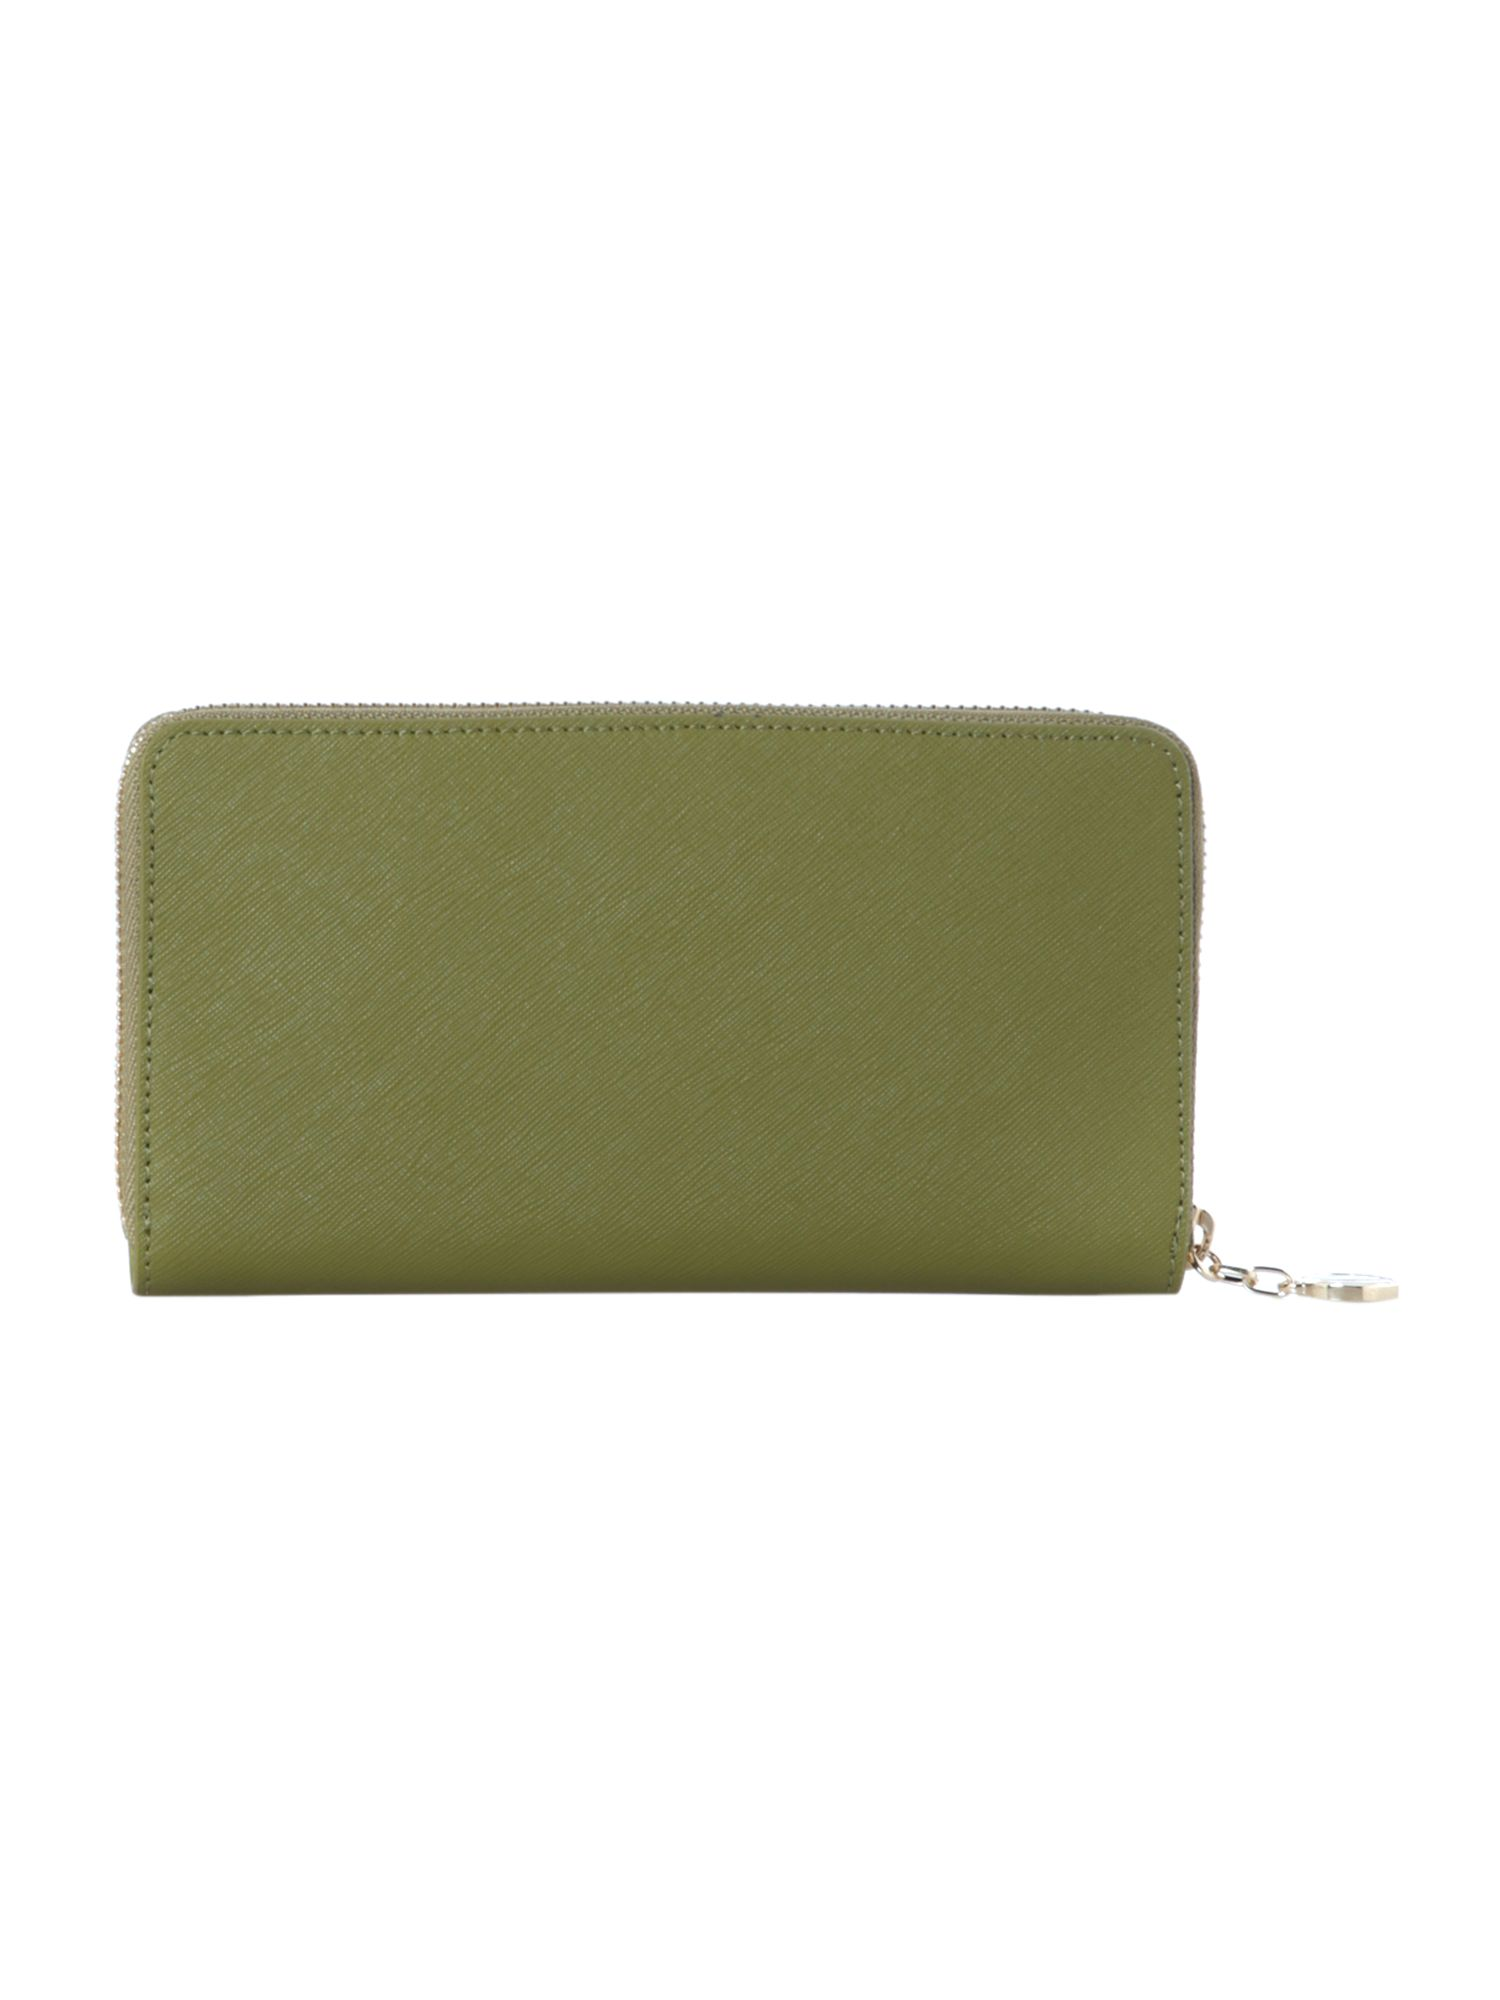 Saffiano green large boxed zip around